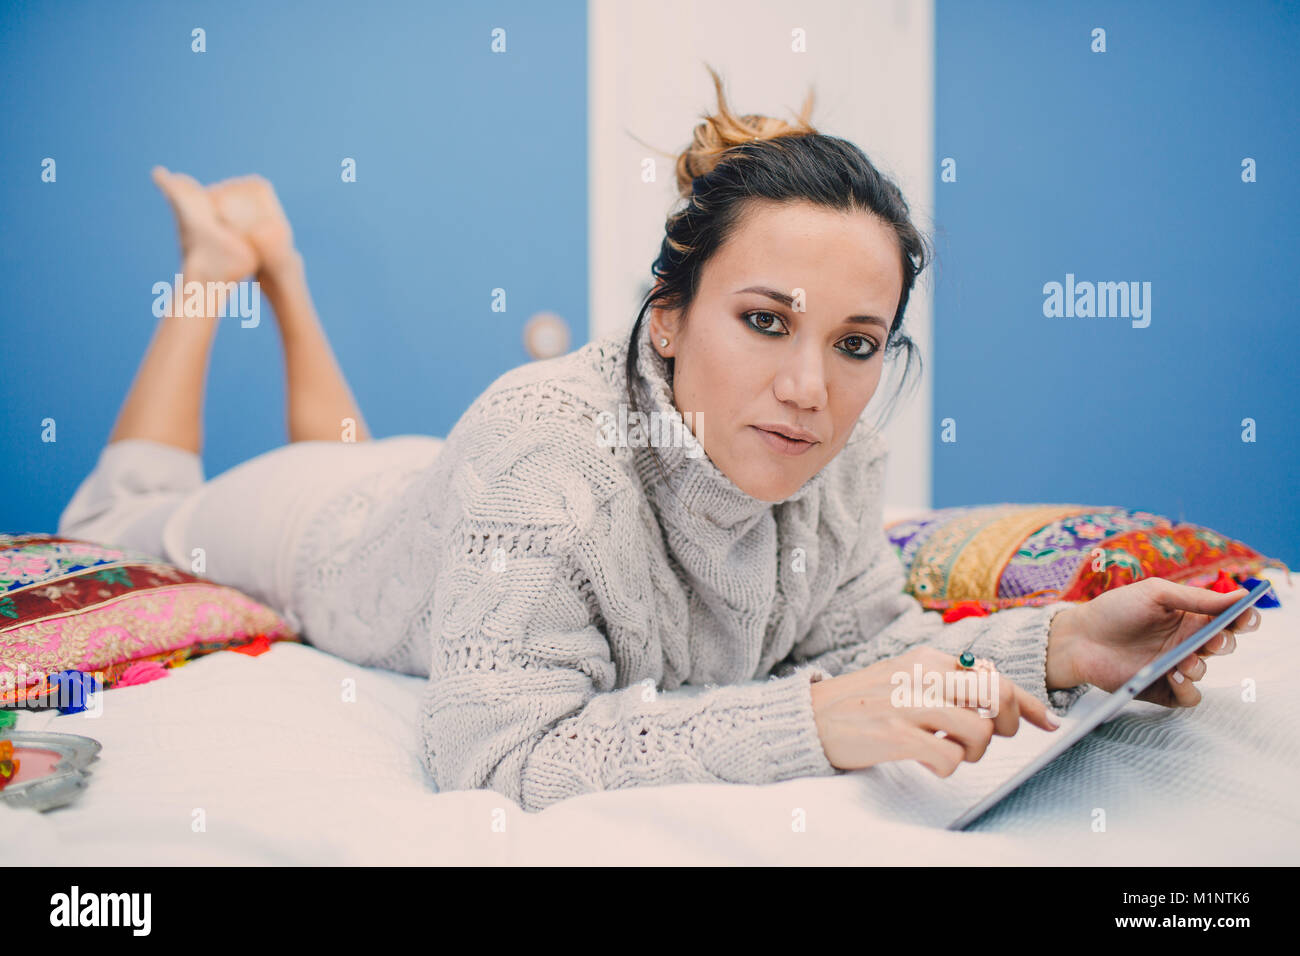 Young beautiful woman reading tablet at home lying on bed. - Stock Image